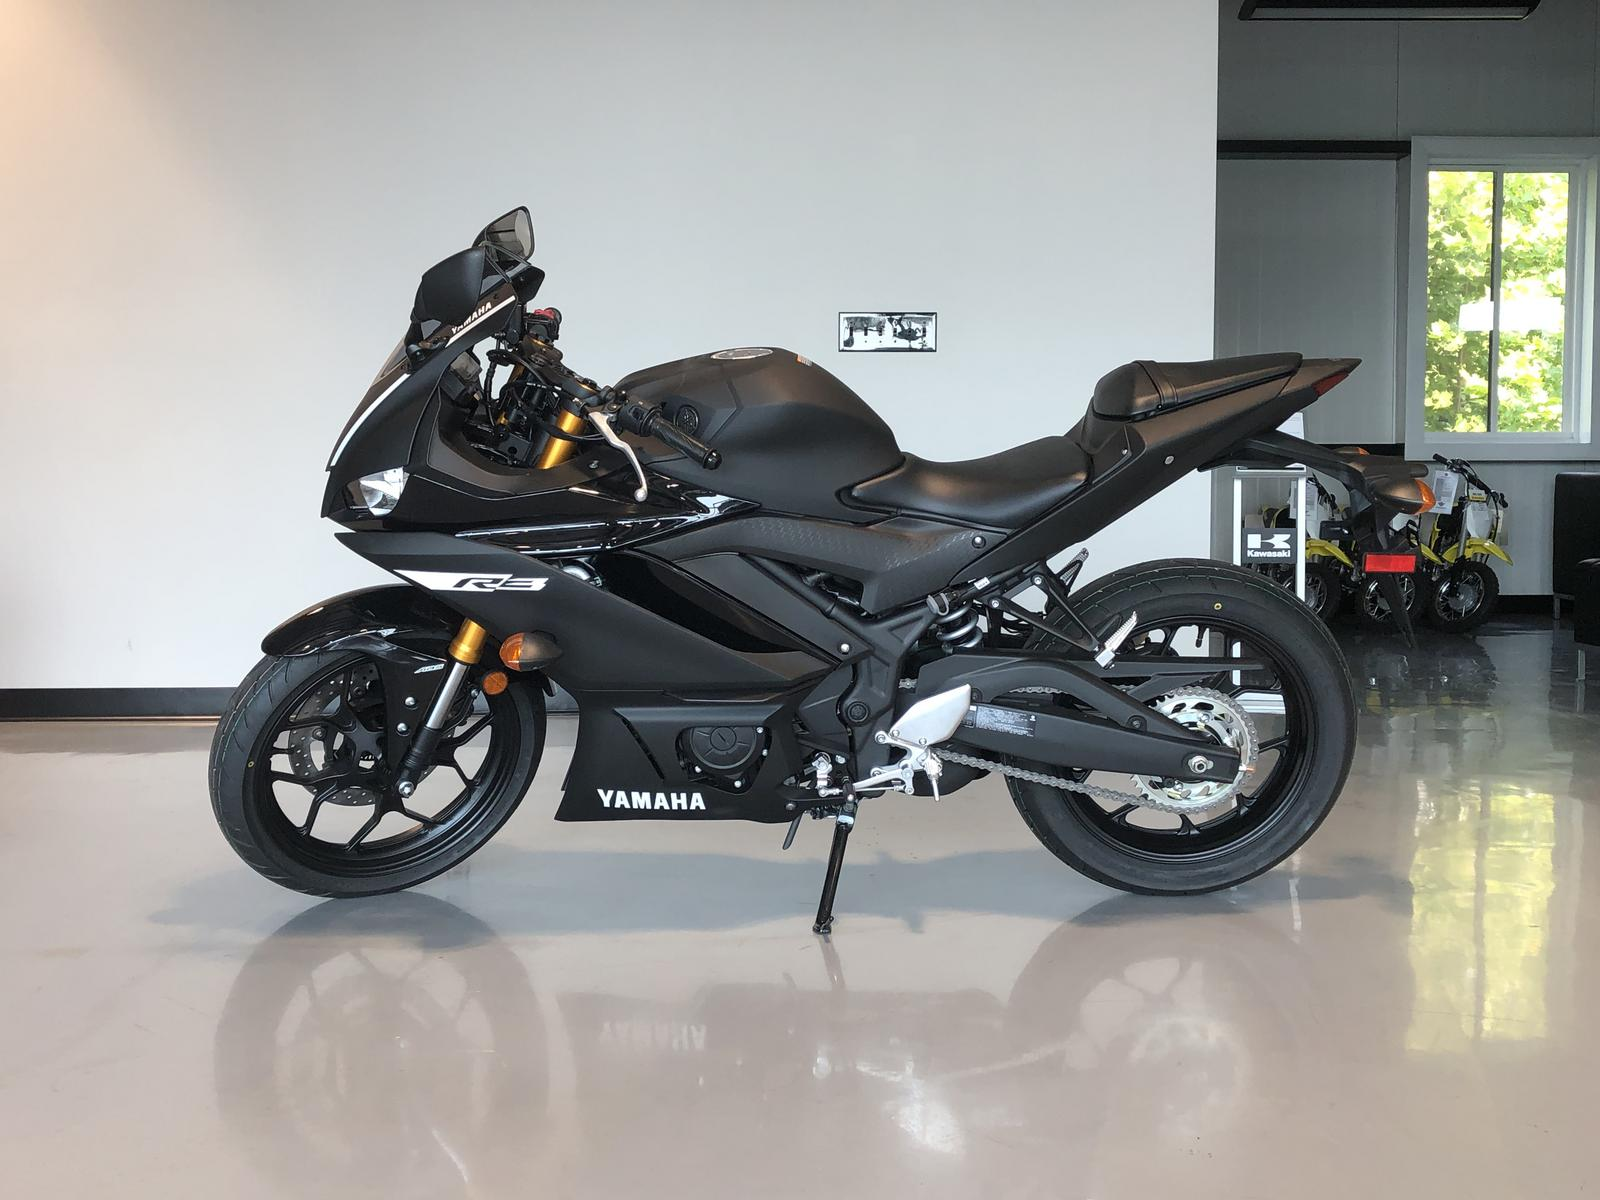 2019 Yamaha Yzf R3 Abs For Sale In Purcellville Va Motomember